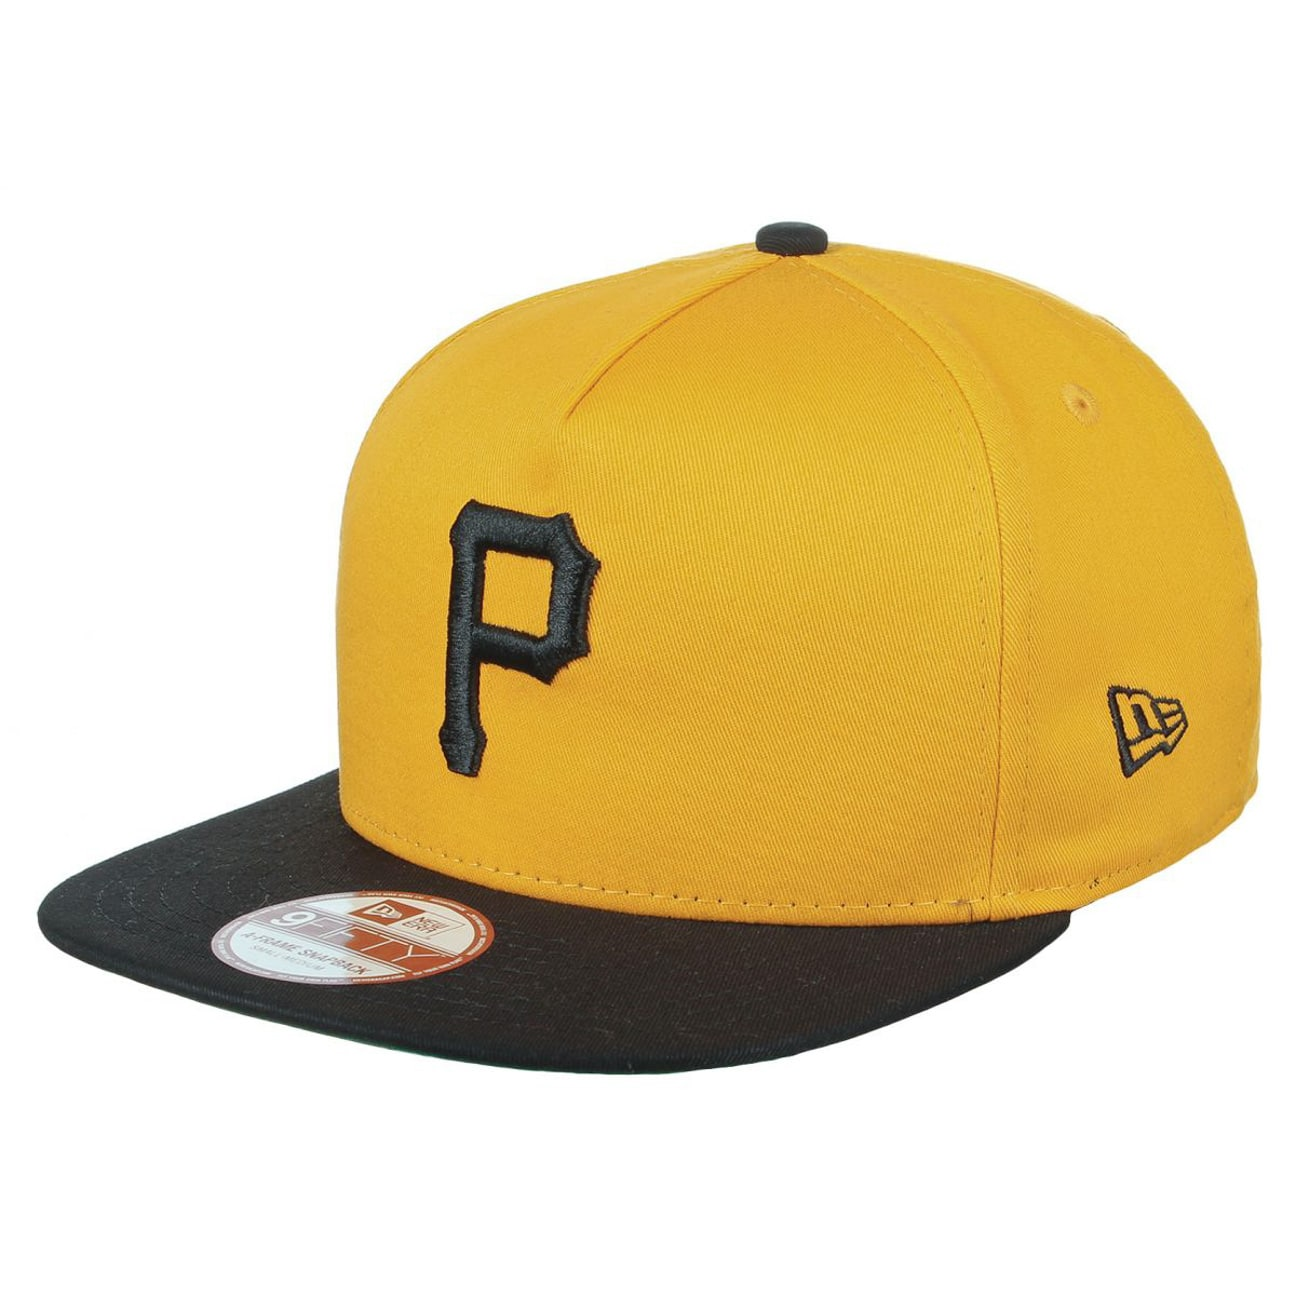 8825269133c ... snapback hat  9fifty pittsburgh pirates cap by new era 1